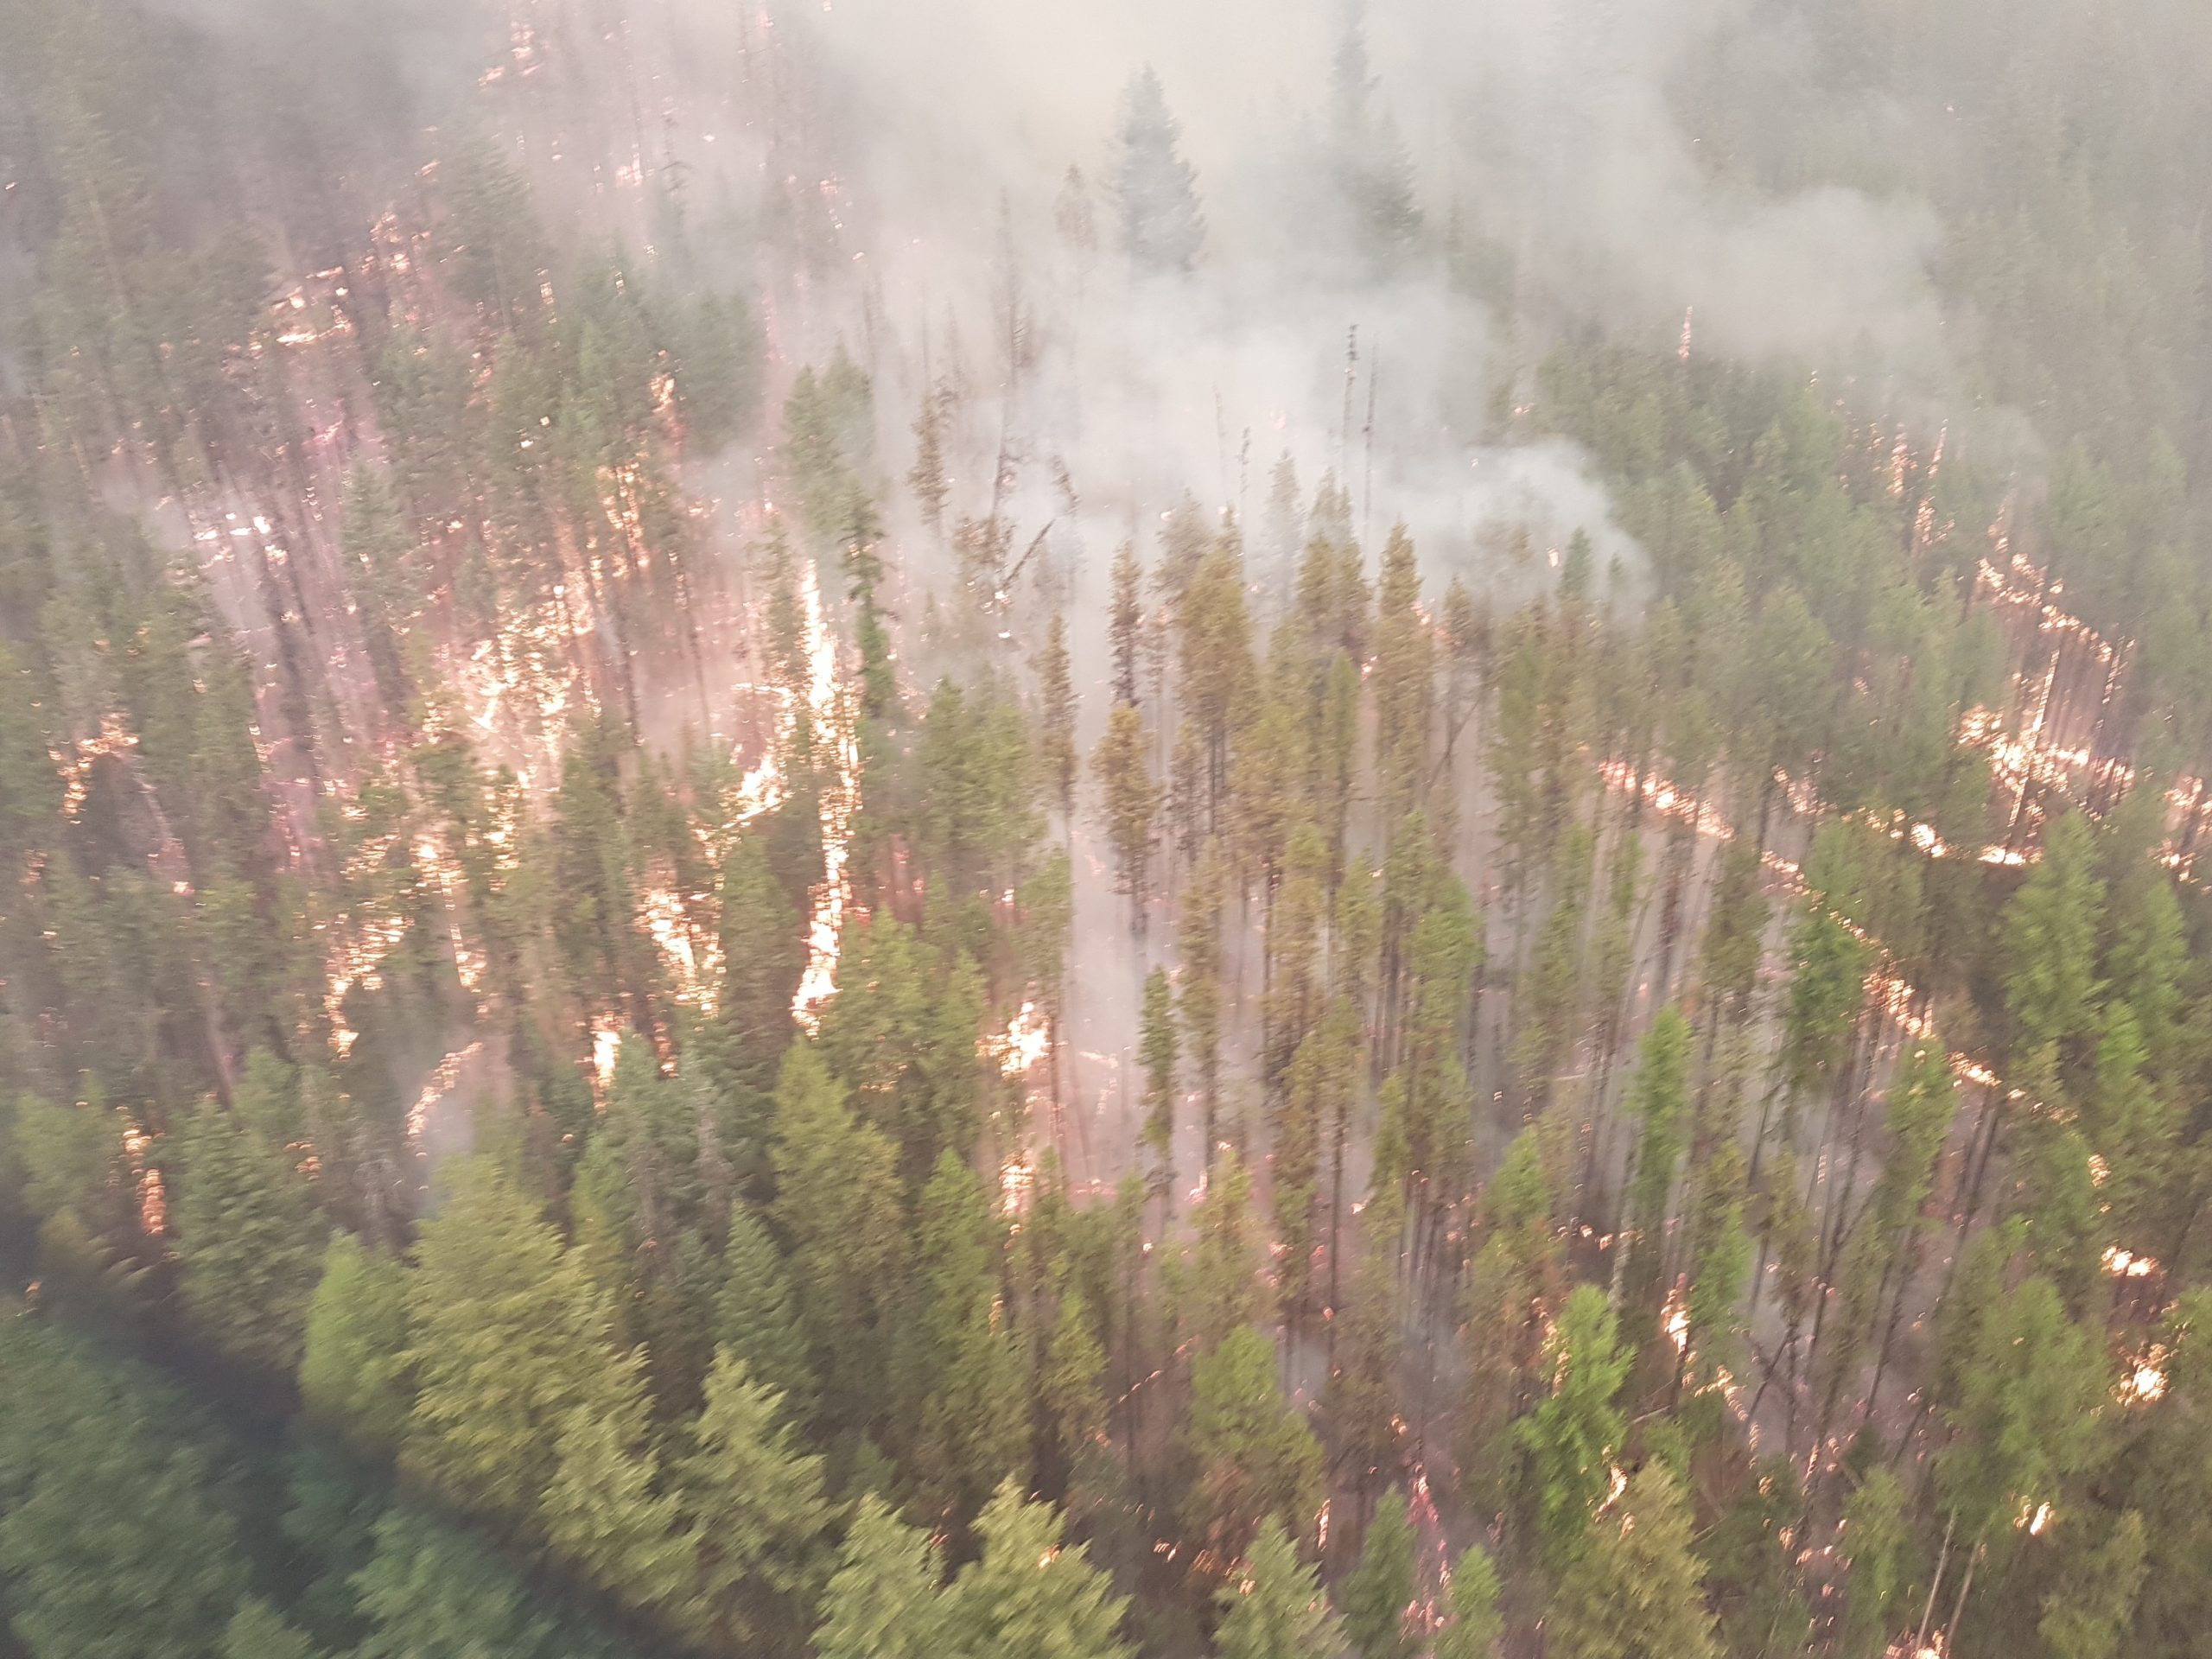 Fire crews confident with progress made on Meachen Creek fire